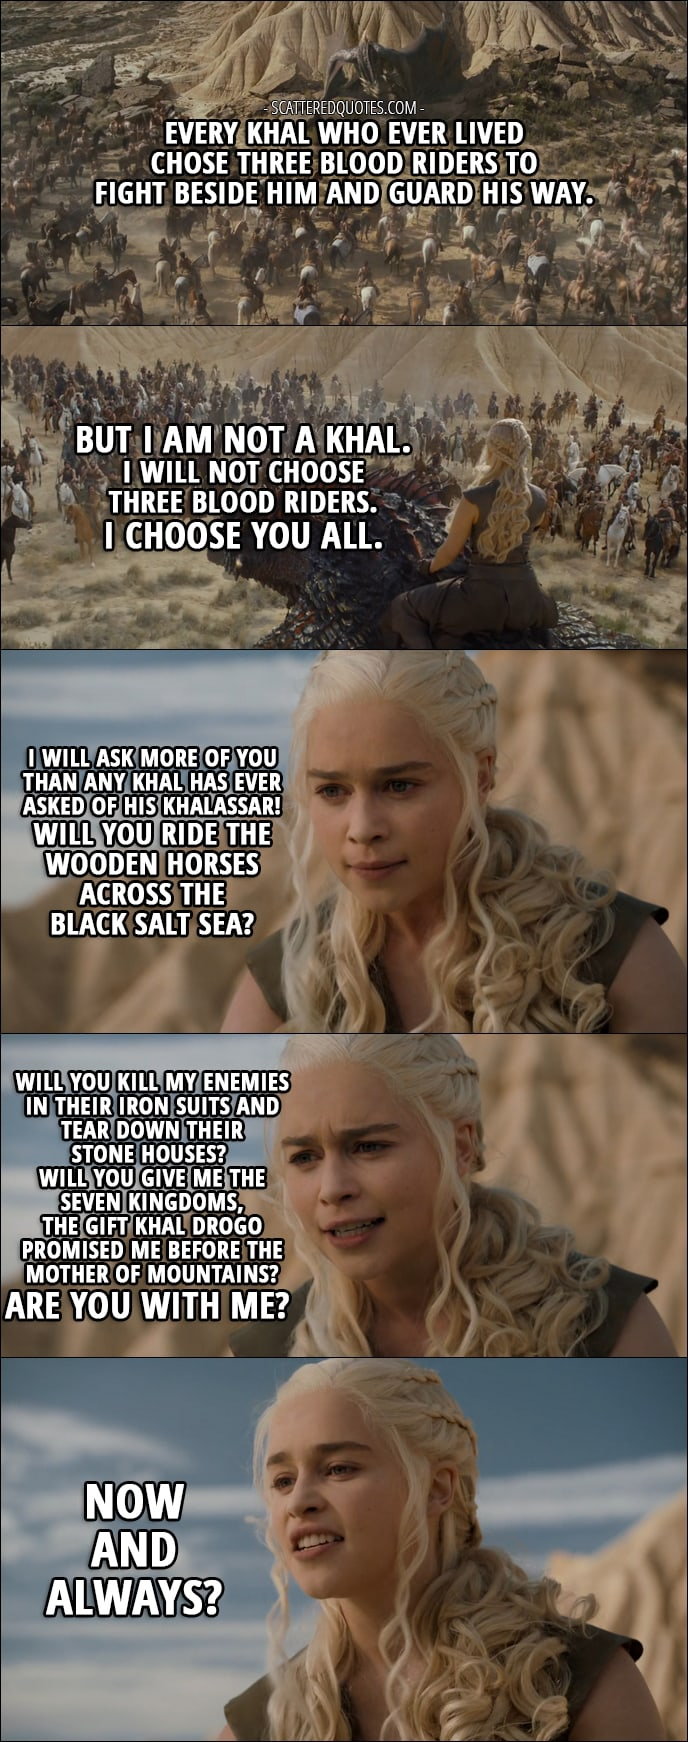 Quote from Game of Thrones 6x06 - Daenerys Targaryen (to khalassar): Every khal who ever lived chose three blood riders to fight beside him and guard his way. But I am not a khal. I will not choose three blood riders. I choose you all. I will ask more of you than any khal has ever asked of his khalassar! Will you ride the wooden horses across the black salt sea? Will you kill my enemies in their iron suits and tear down their stone houses? Will you give me the Seven Kingdoms, the gift Khal Drogo promised me before the Mother of Mountains? Are you with me? Now and always?